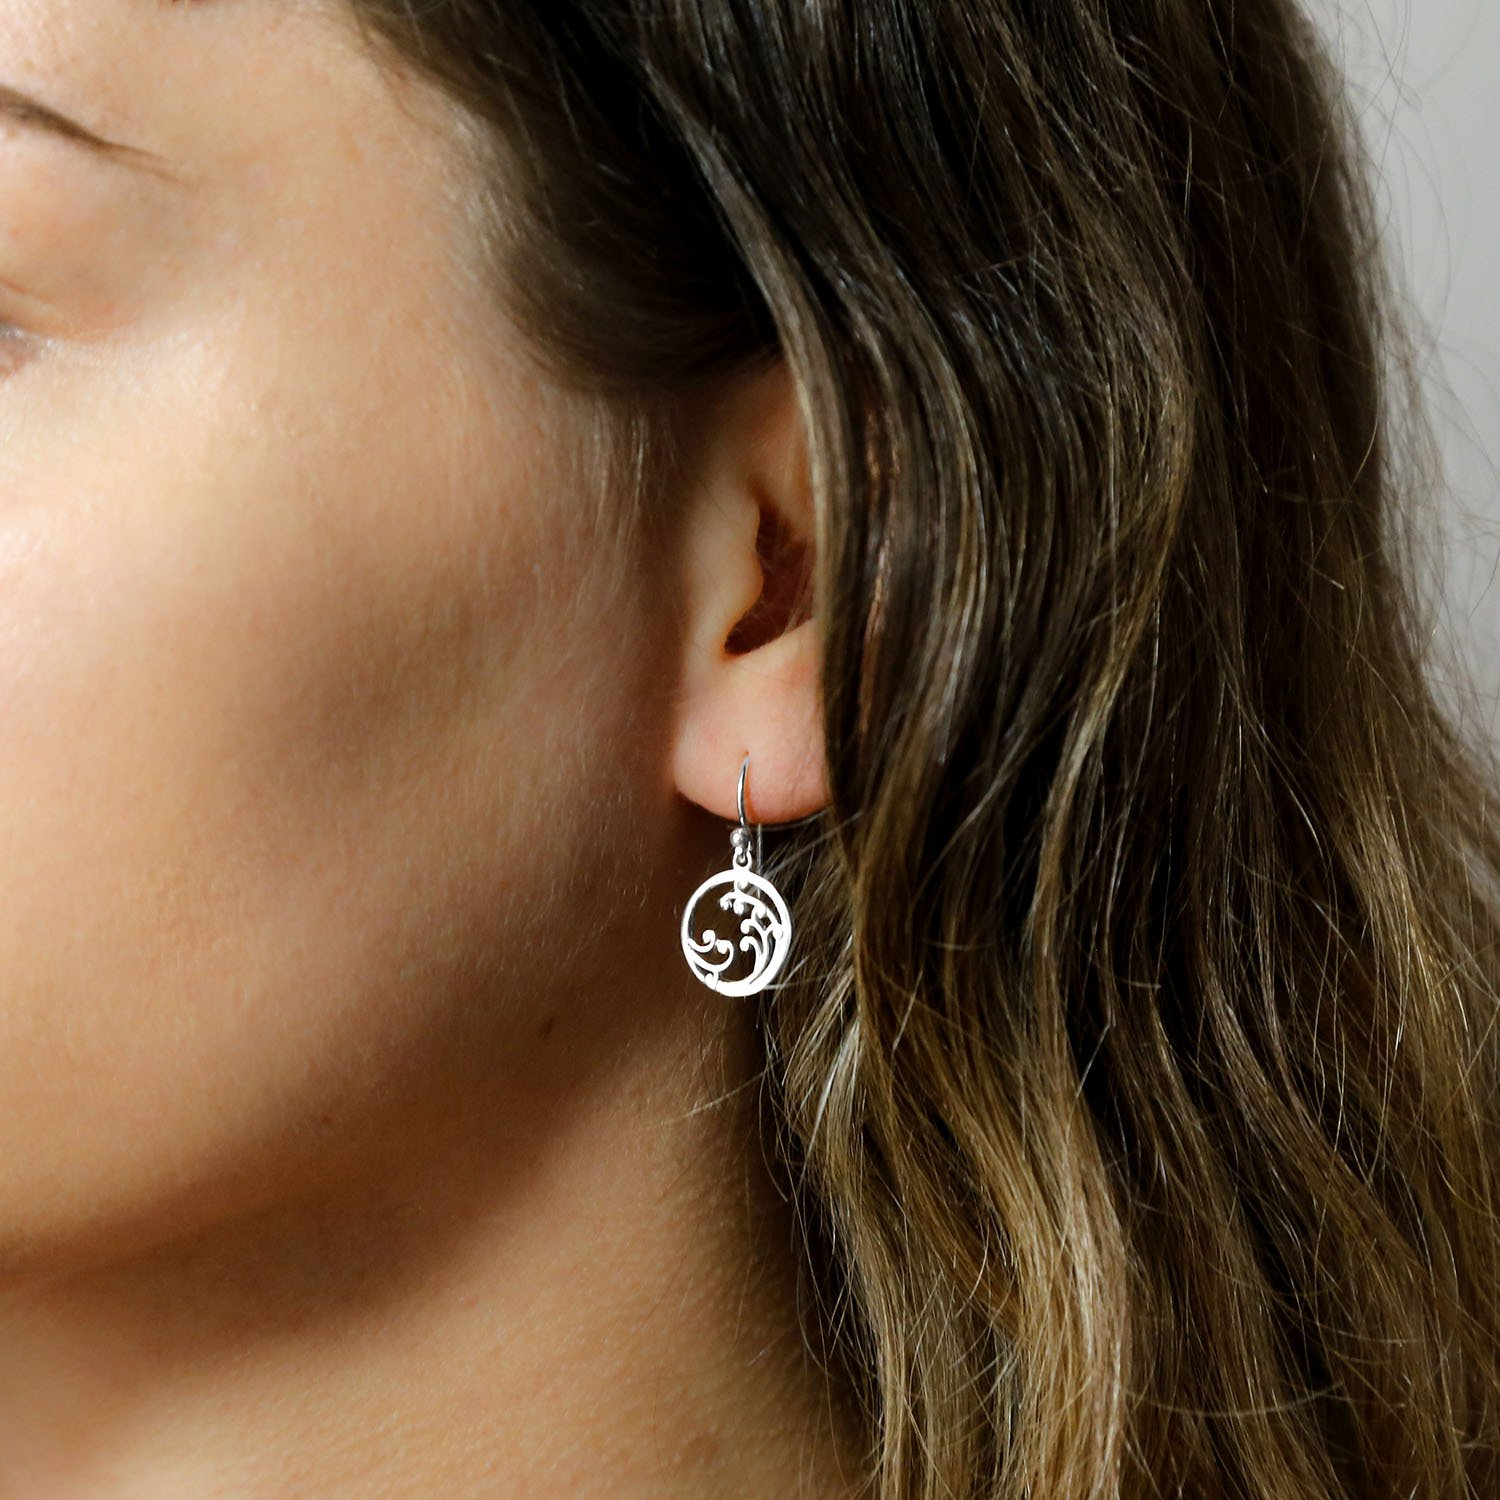 Silver drop earrings with wave details on model